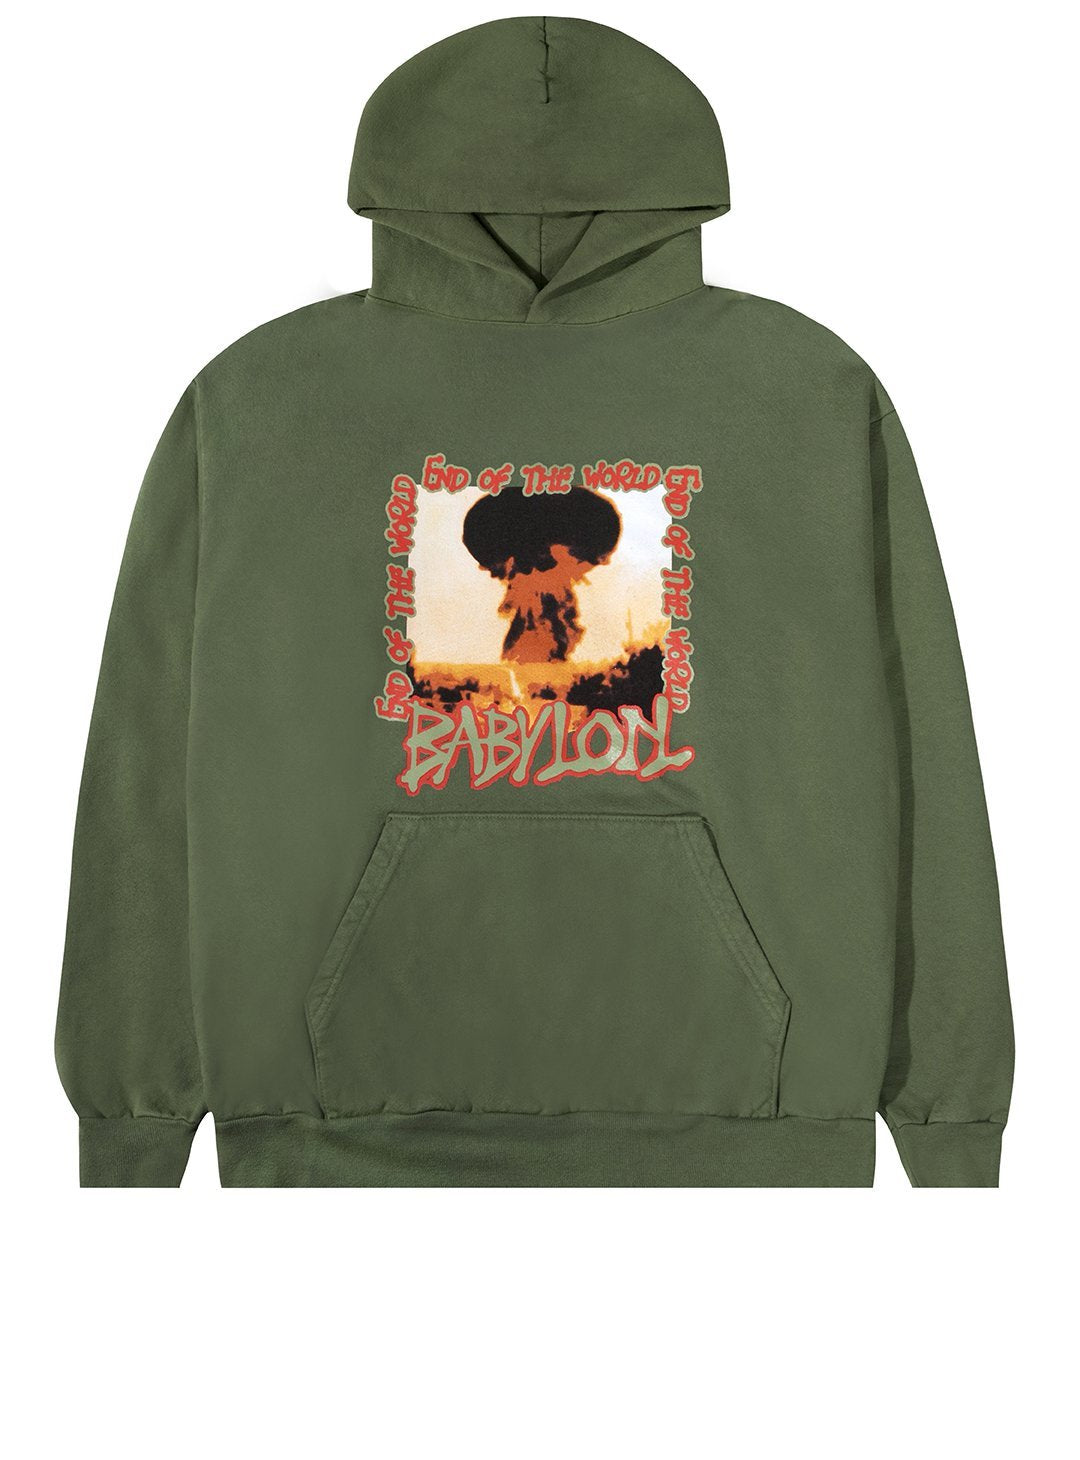 BABYLON M'S HOODIES END OF THE WORLD HOODIE